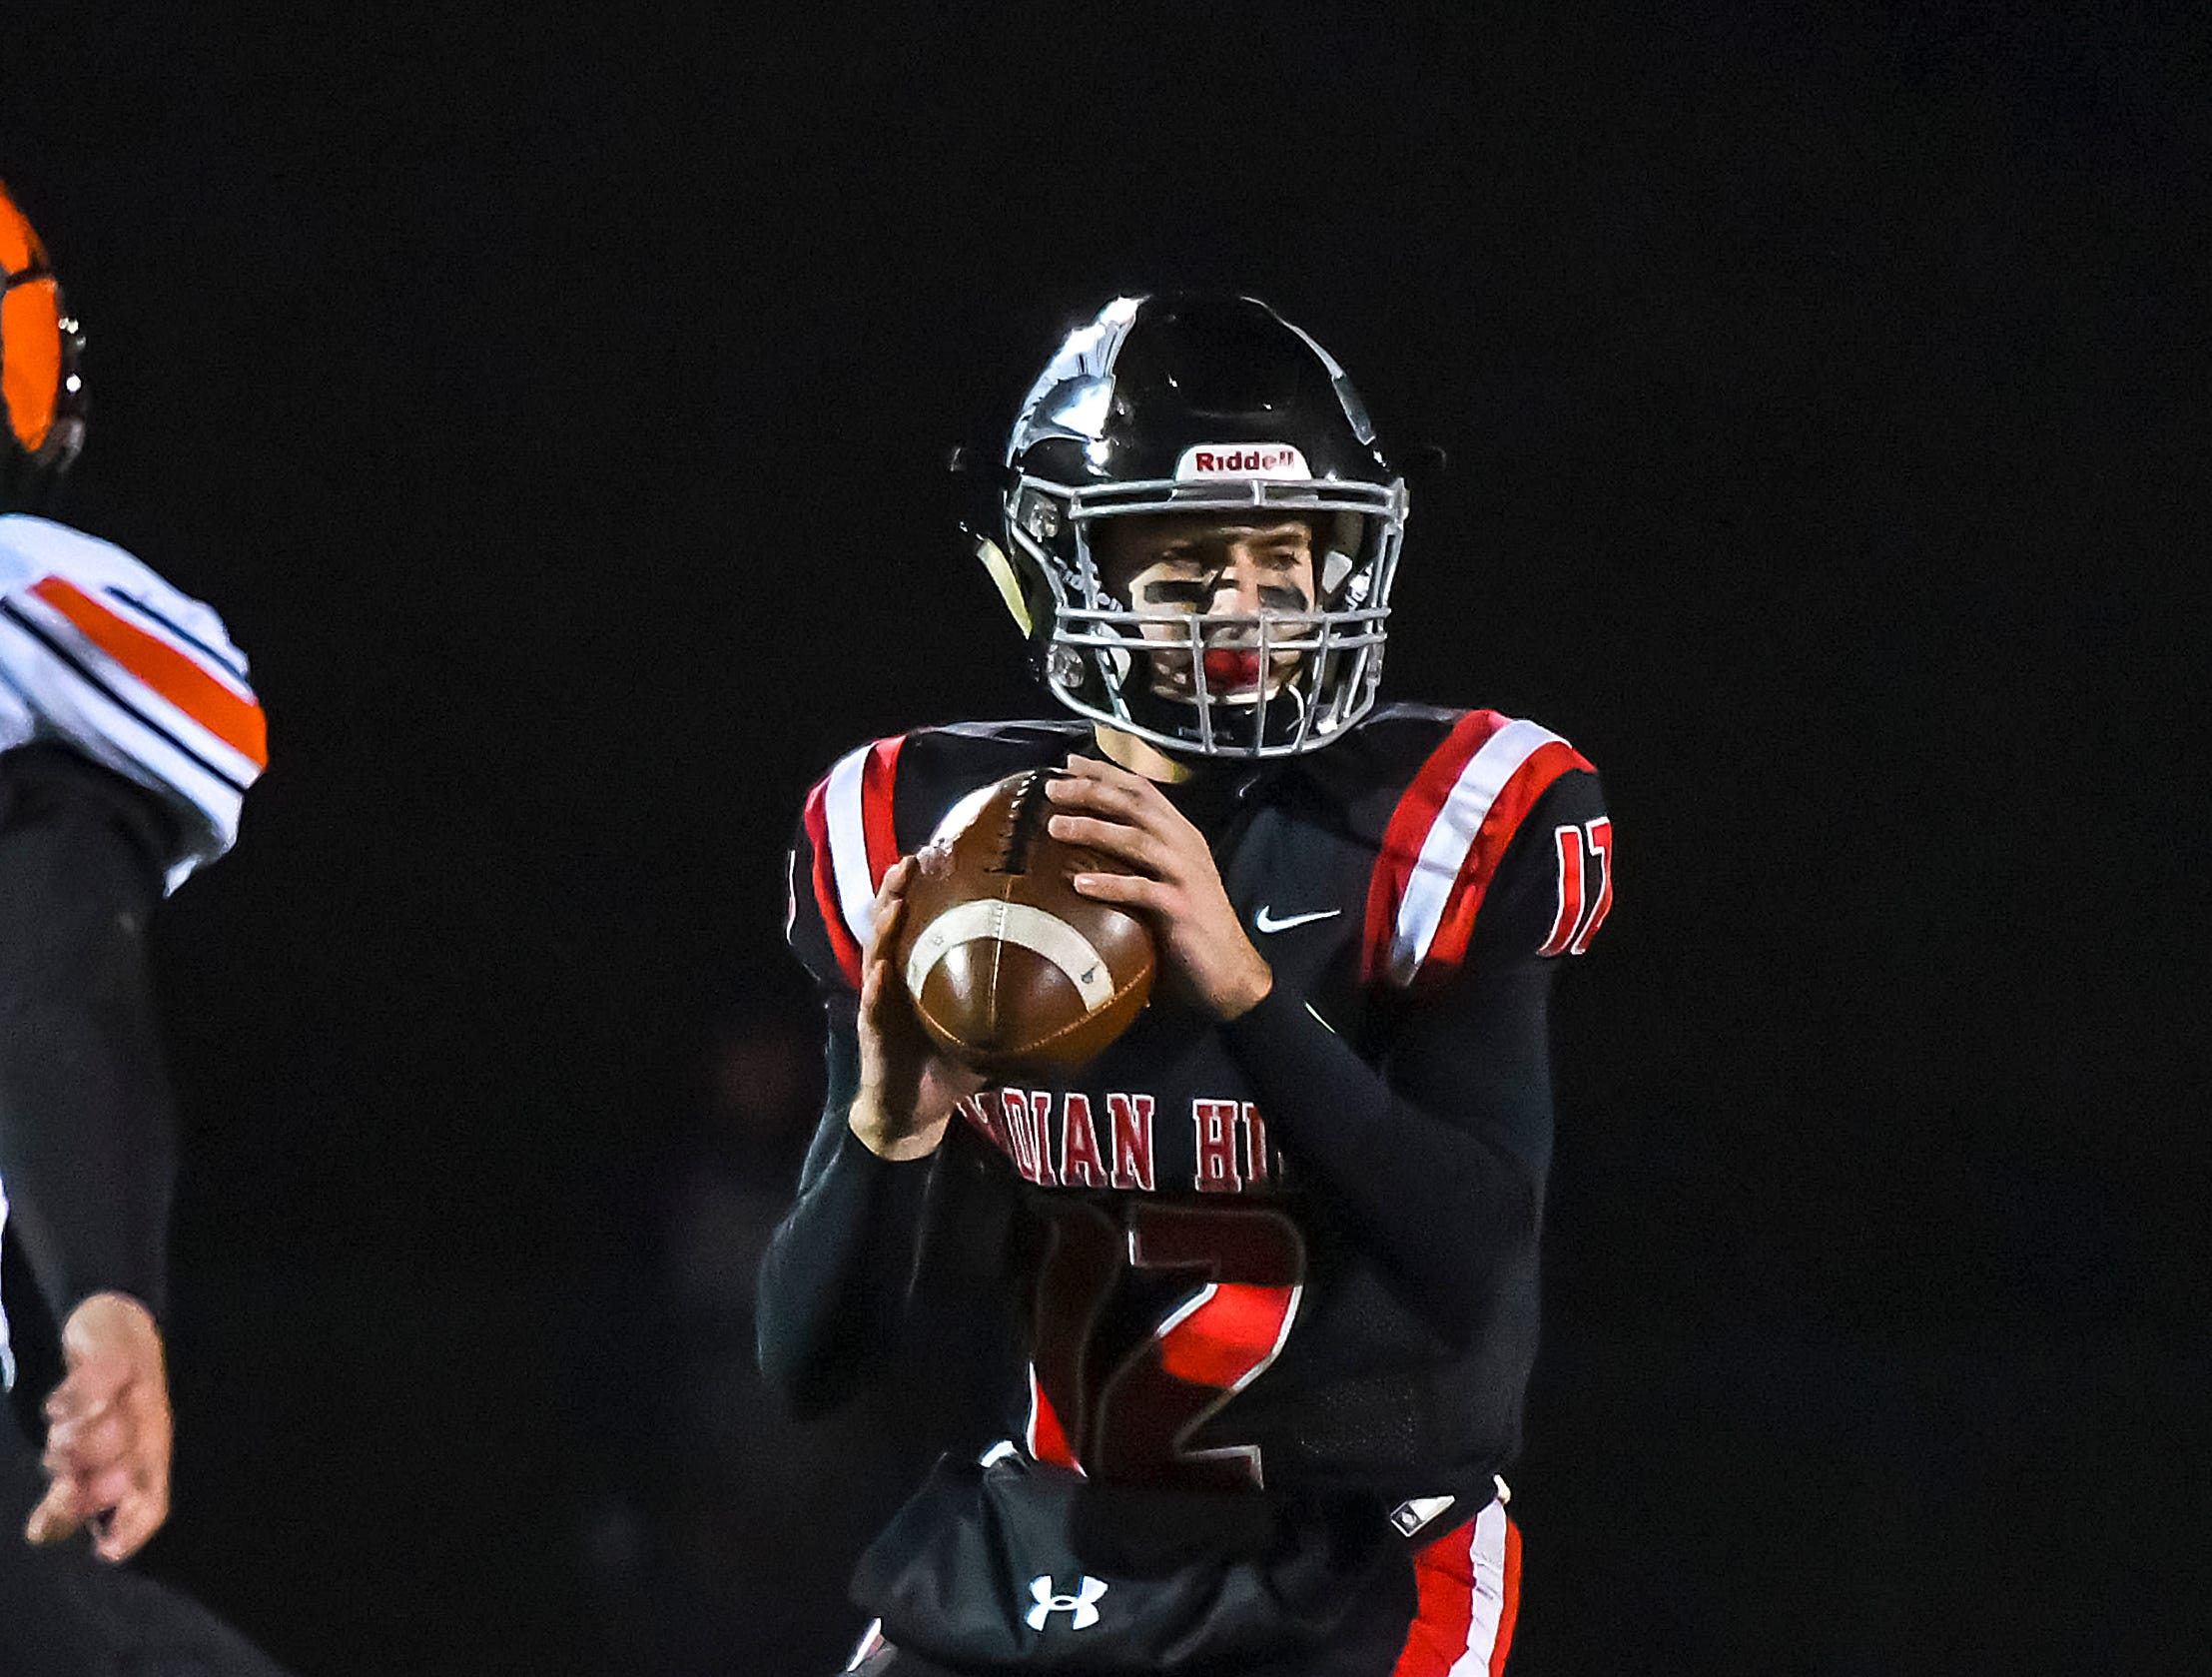 Indian Hill quarterback Cole Dein drops back to pass against Waverly in the OHSAA D4 Region 16 Playoffs at Indian Hill High School, Saturday, Nov. 3, 2018